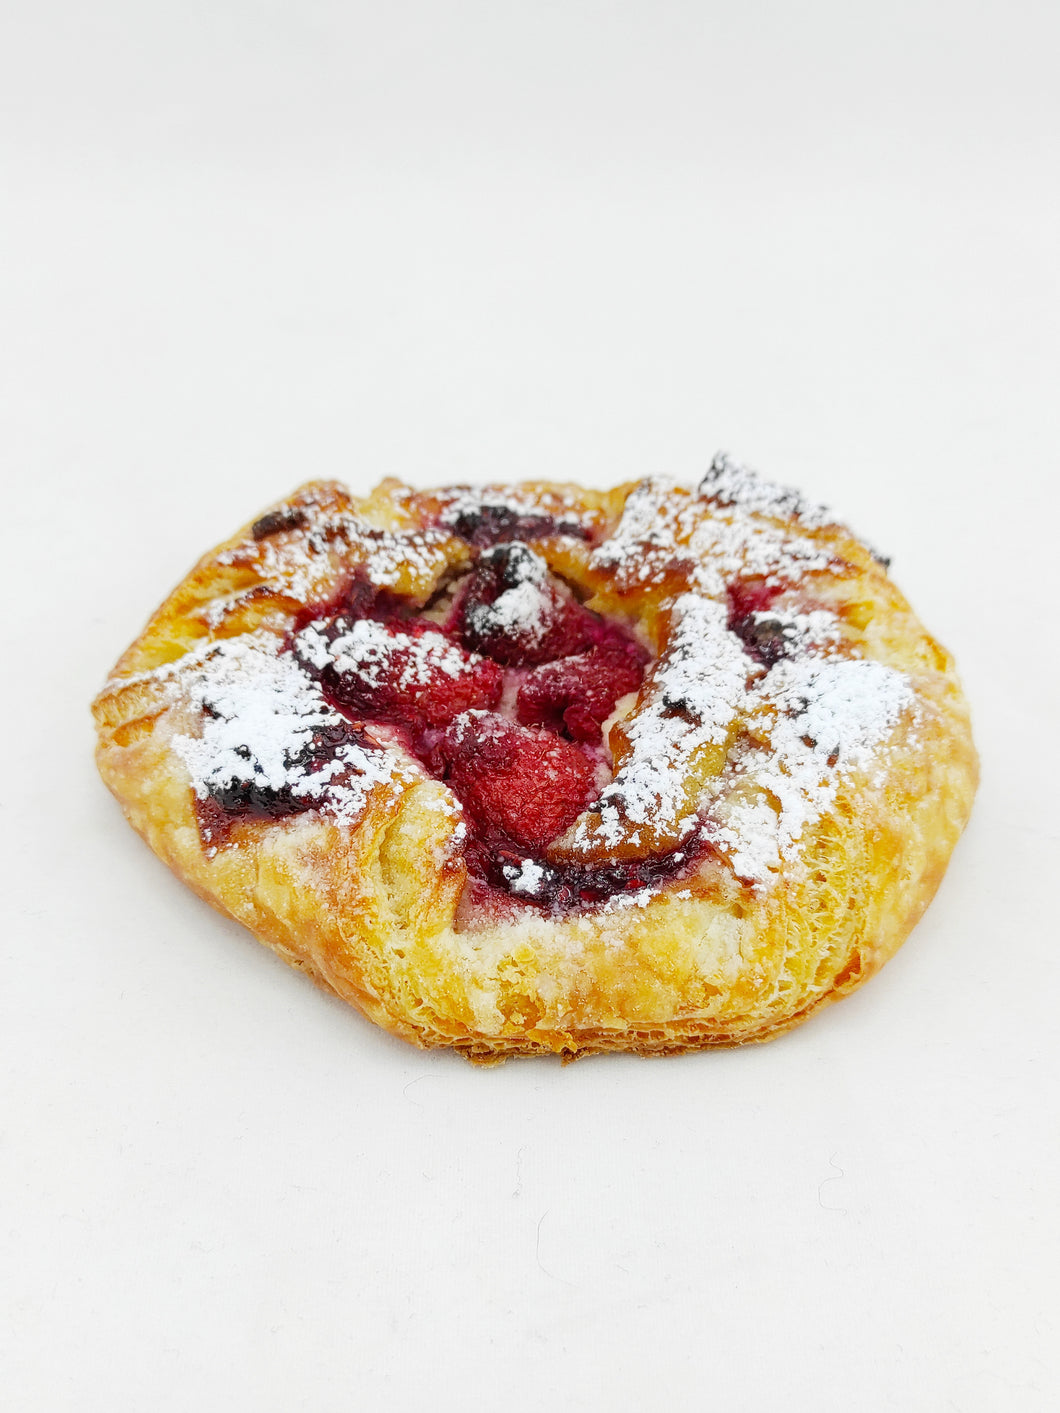 Raspberry Cream Cheese Danish (Vegan)